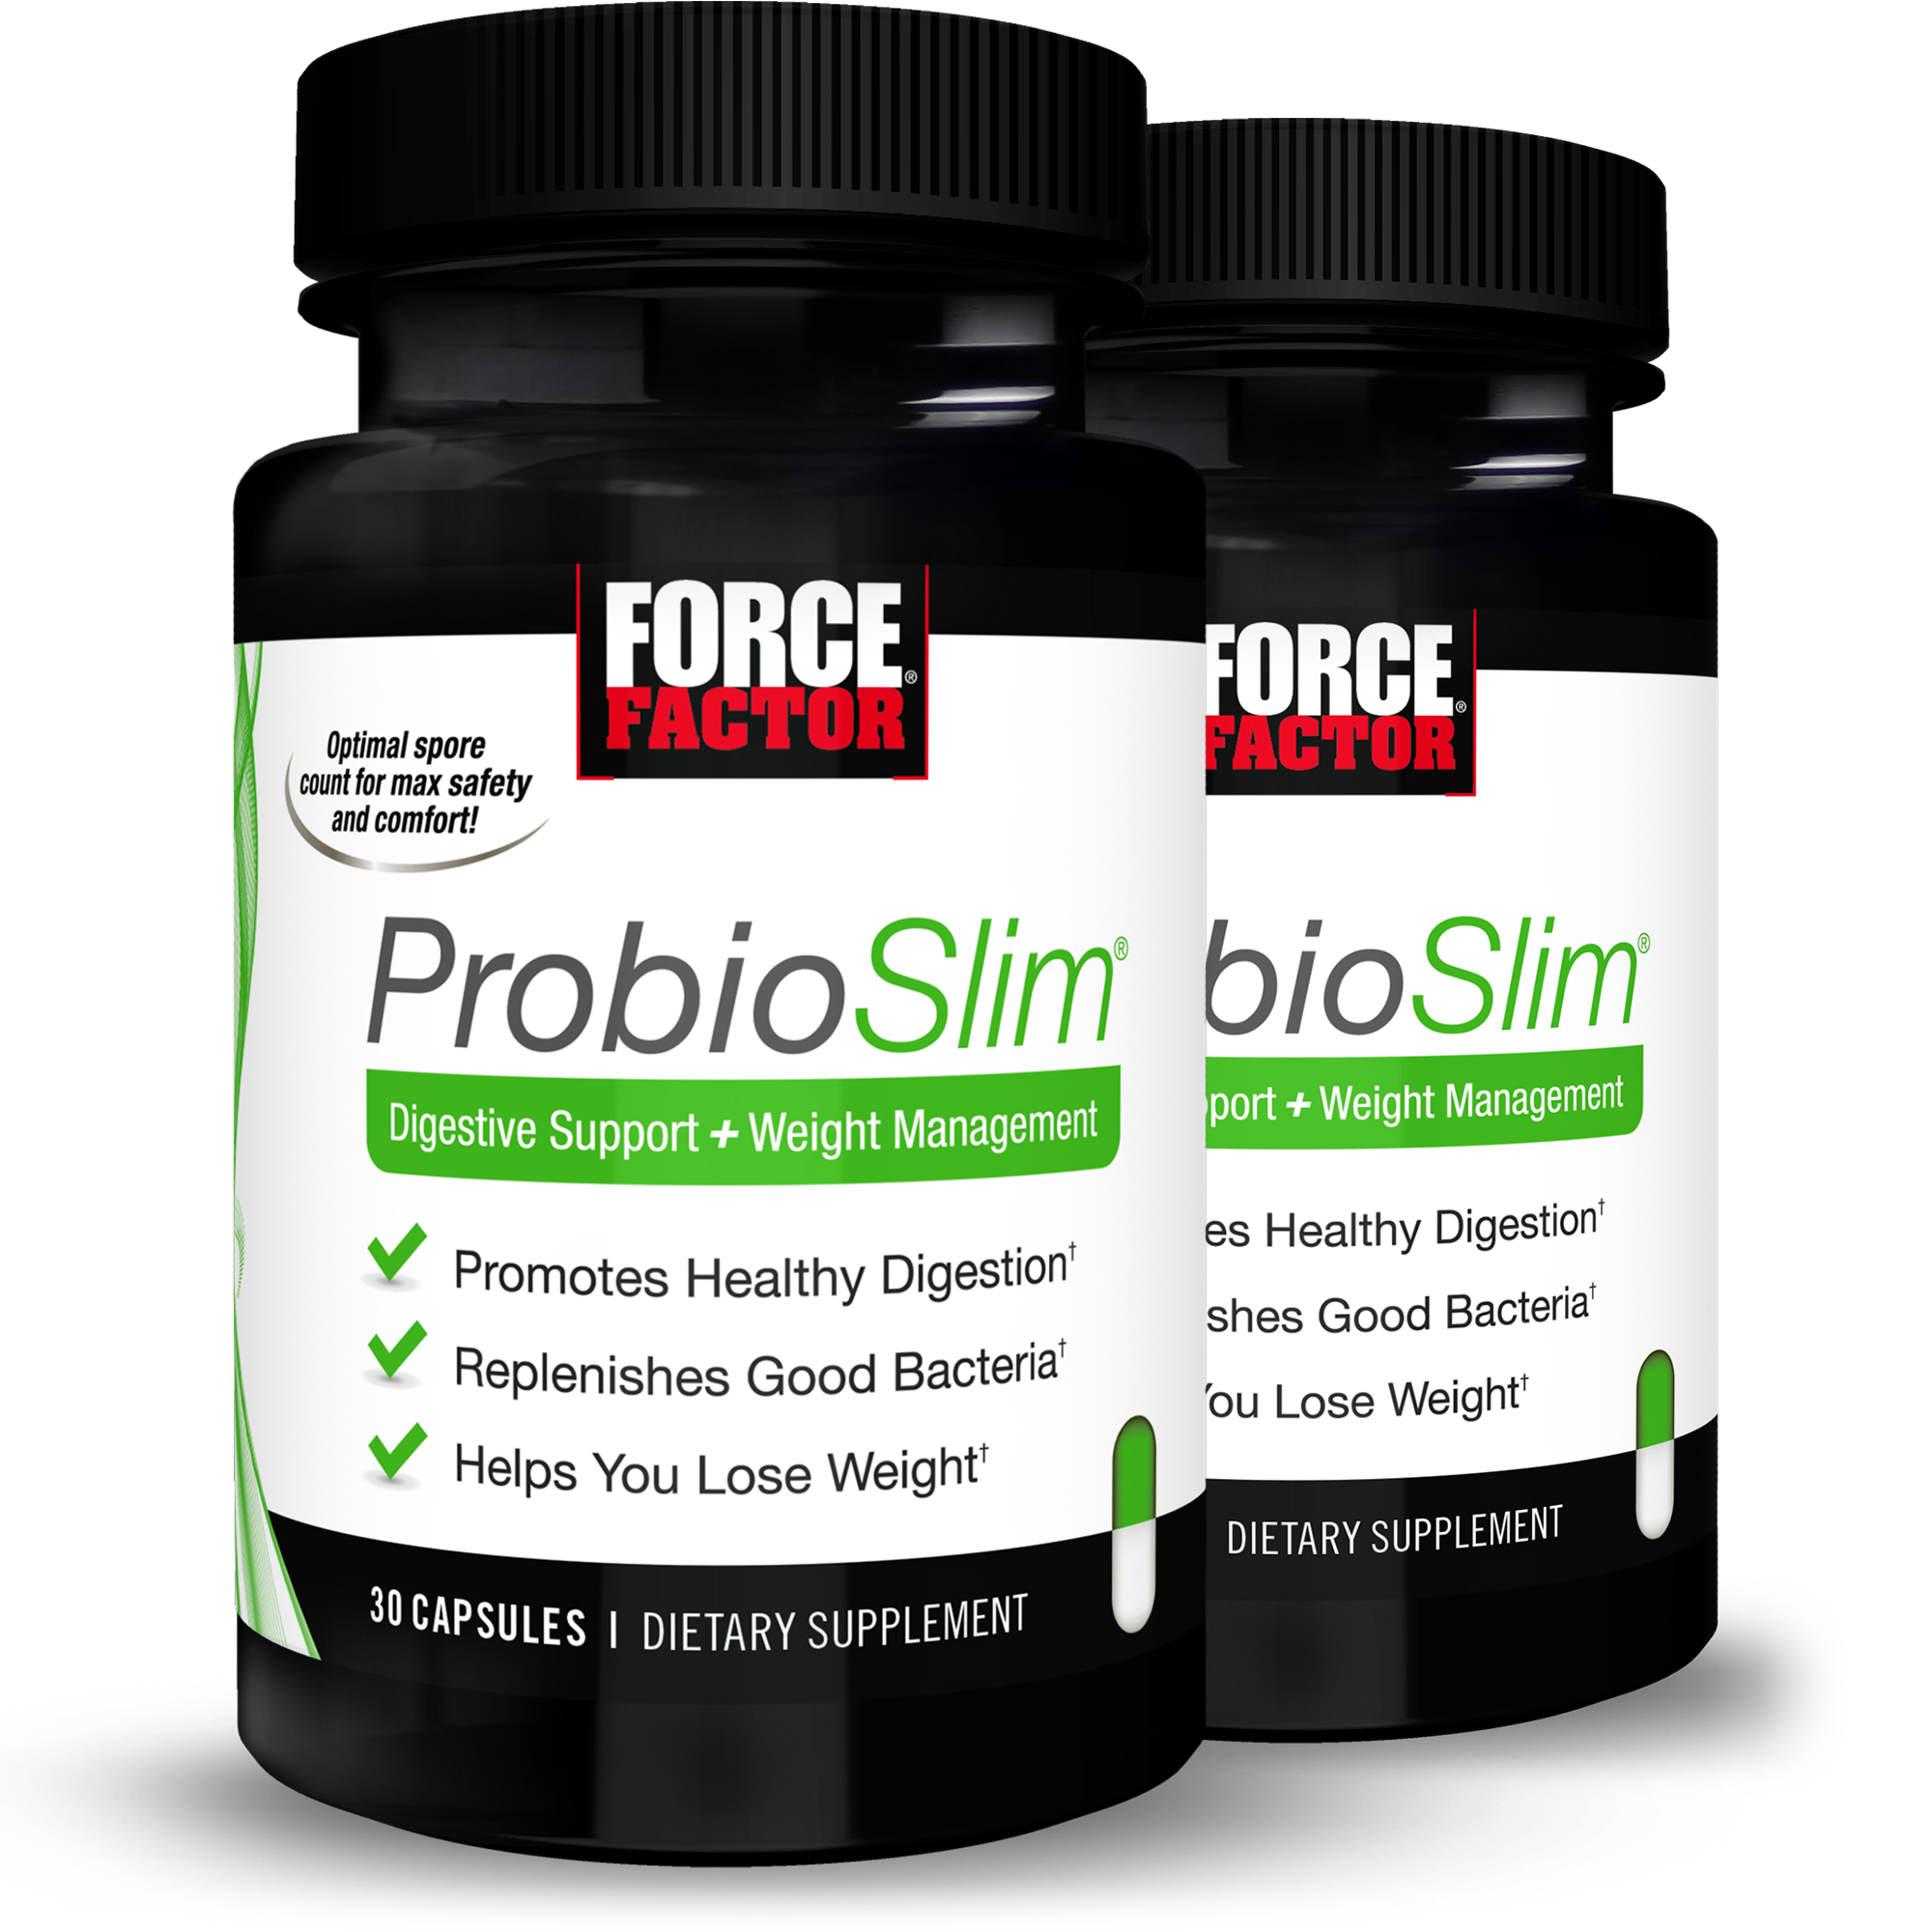 Force Factor ProbioSlim Probiotic Supplement + Weight Loss Capsules, 30ct